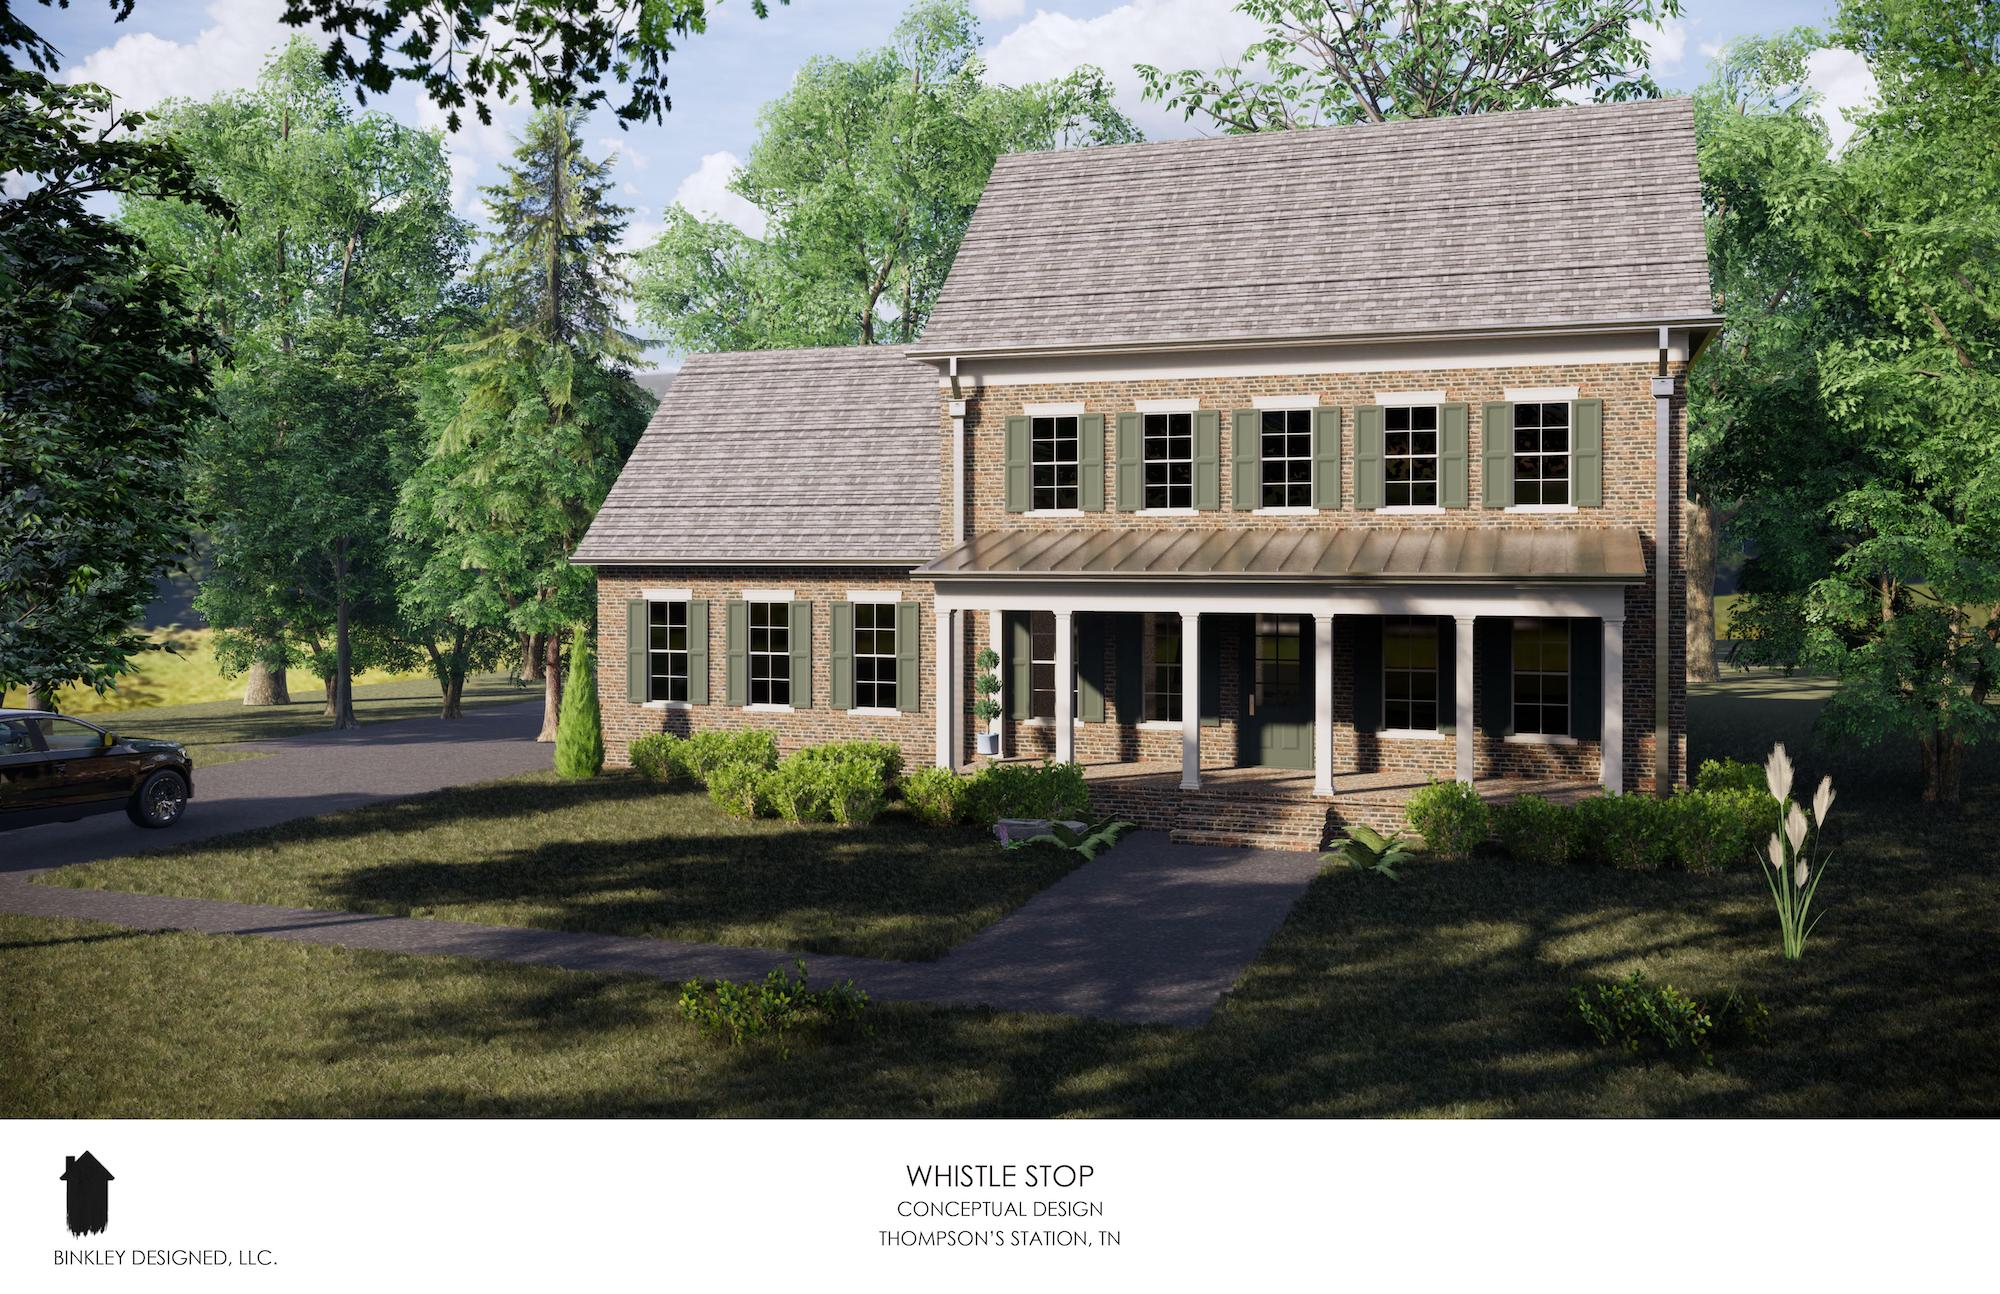 whistle-stop-house1-the harriman